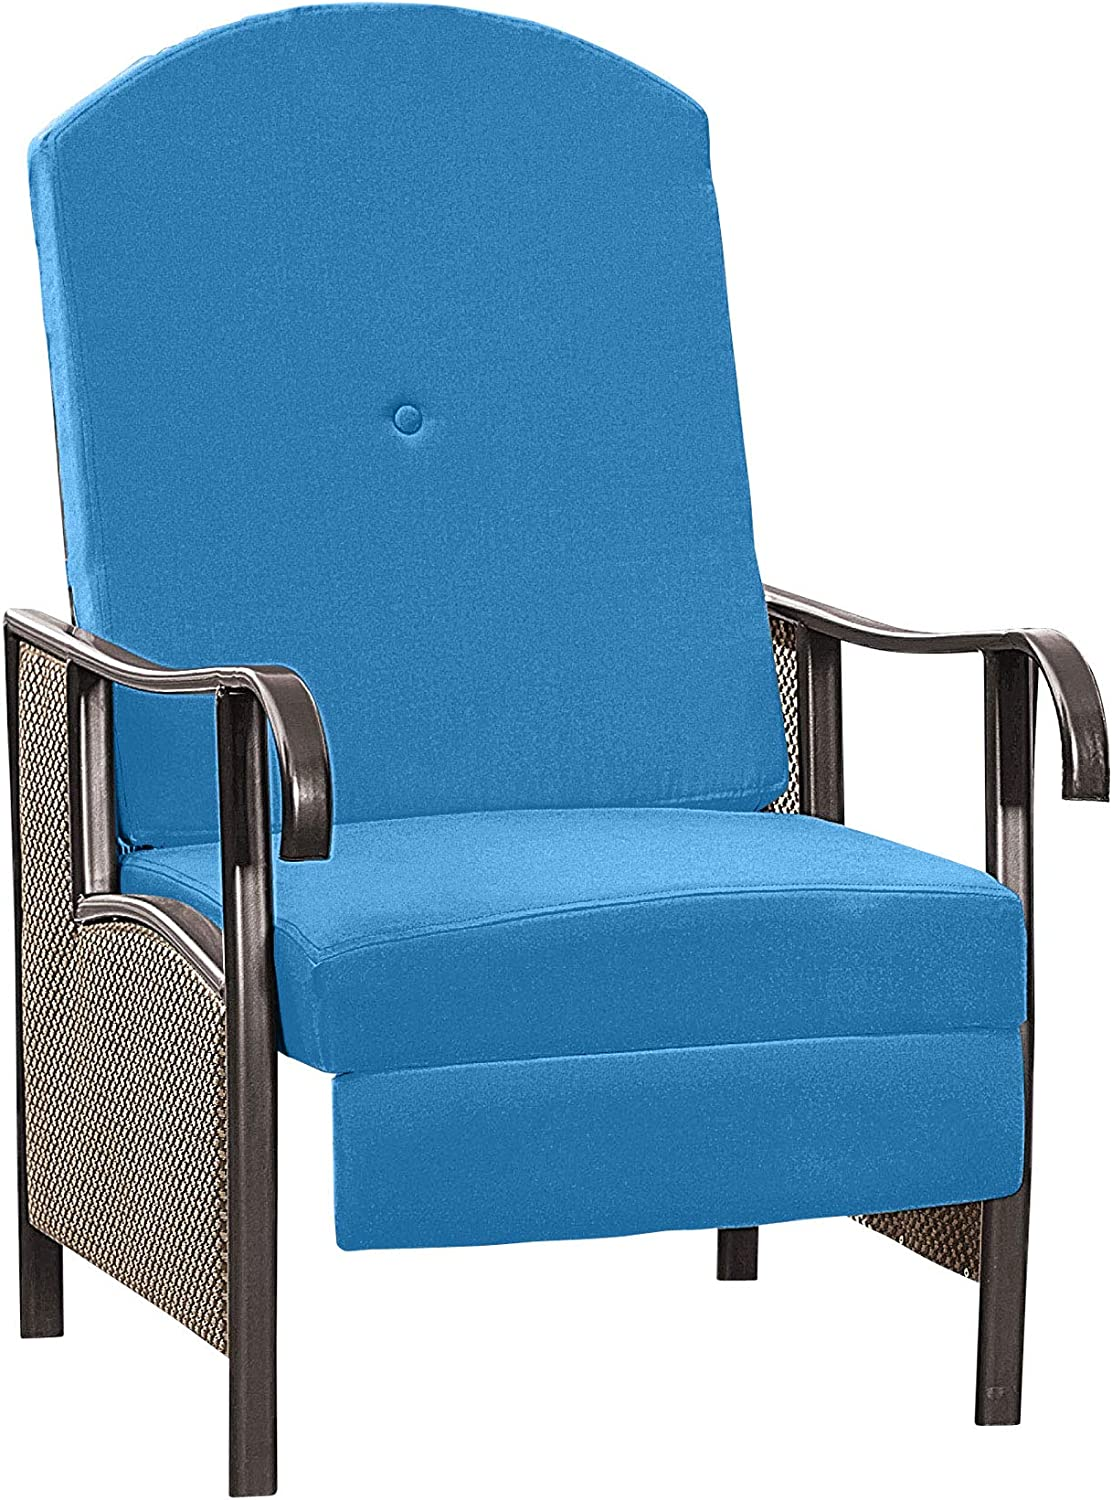 BrylaneHome Oversized Max 45% OFF Outdoor Recliner Patio Bombing new work with Cushion Chair